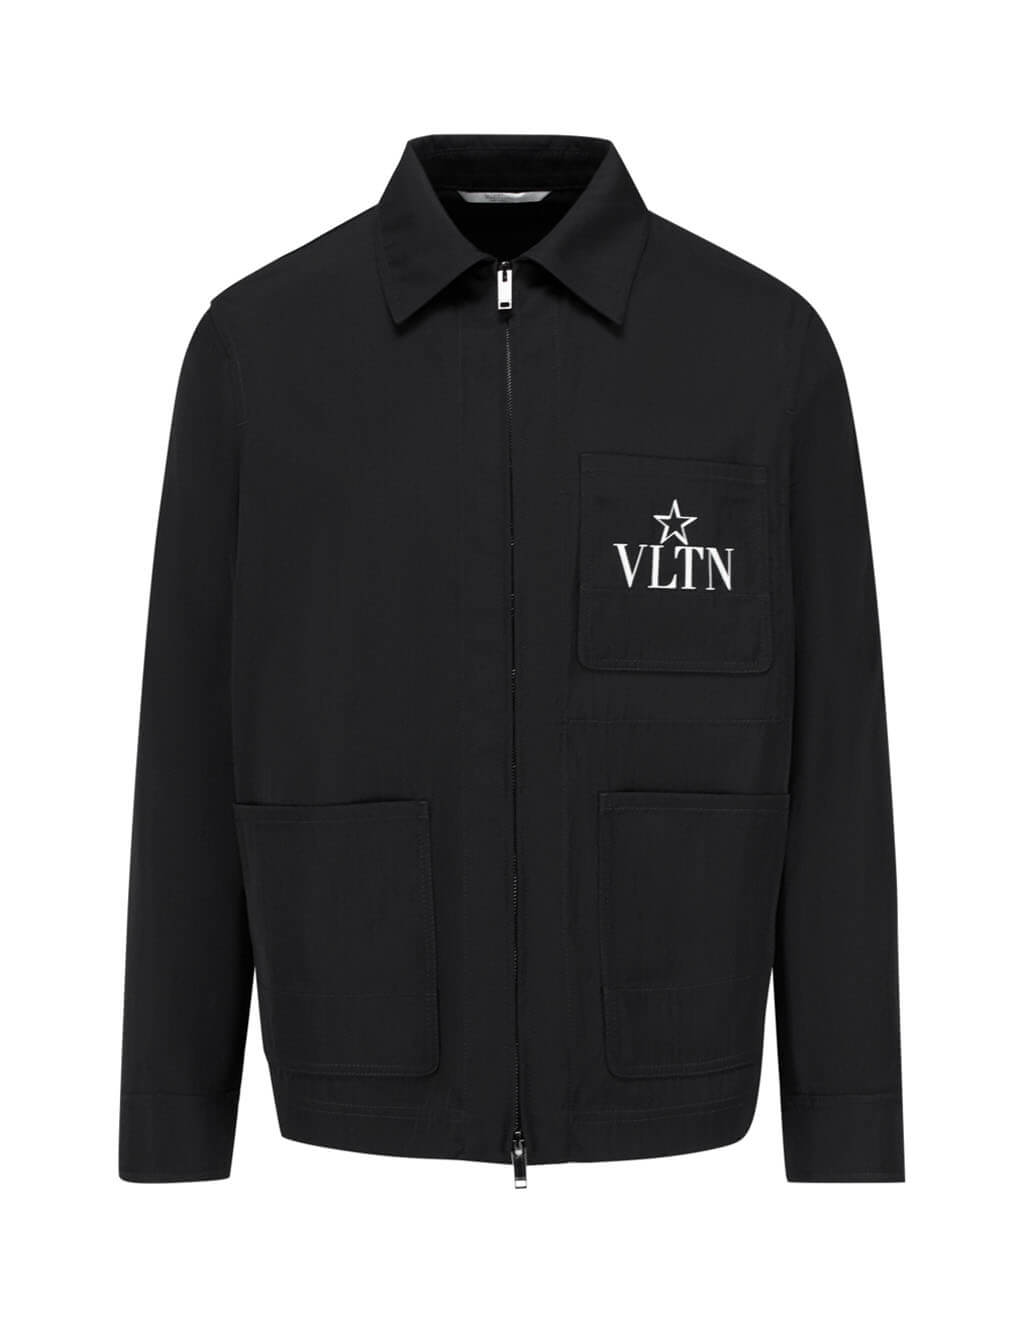 Valentino Men's Giulio Fashion Black Caban Star Coat TV3CJC955VR 0NI